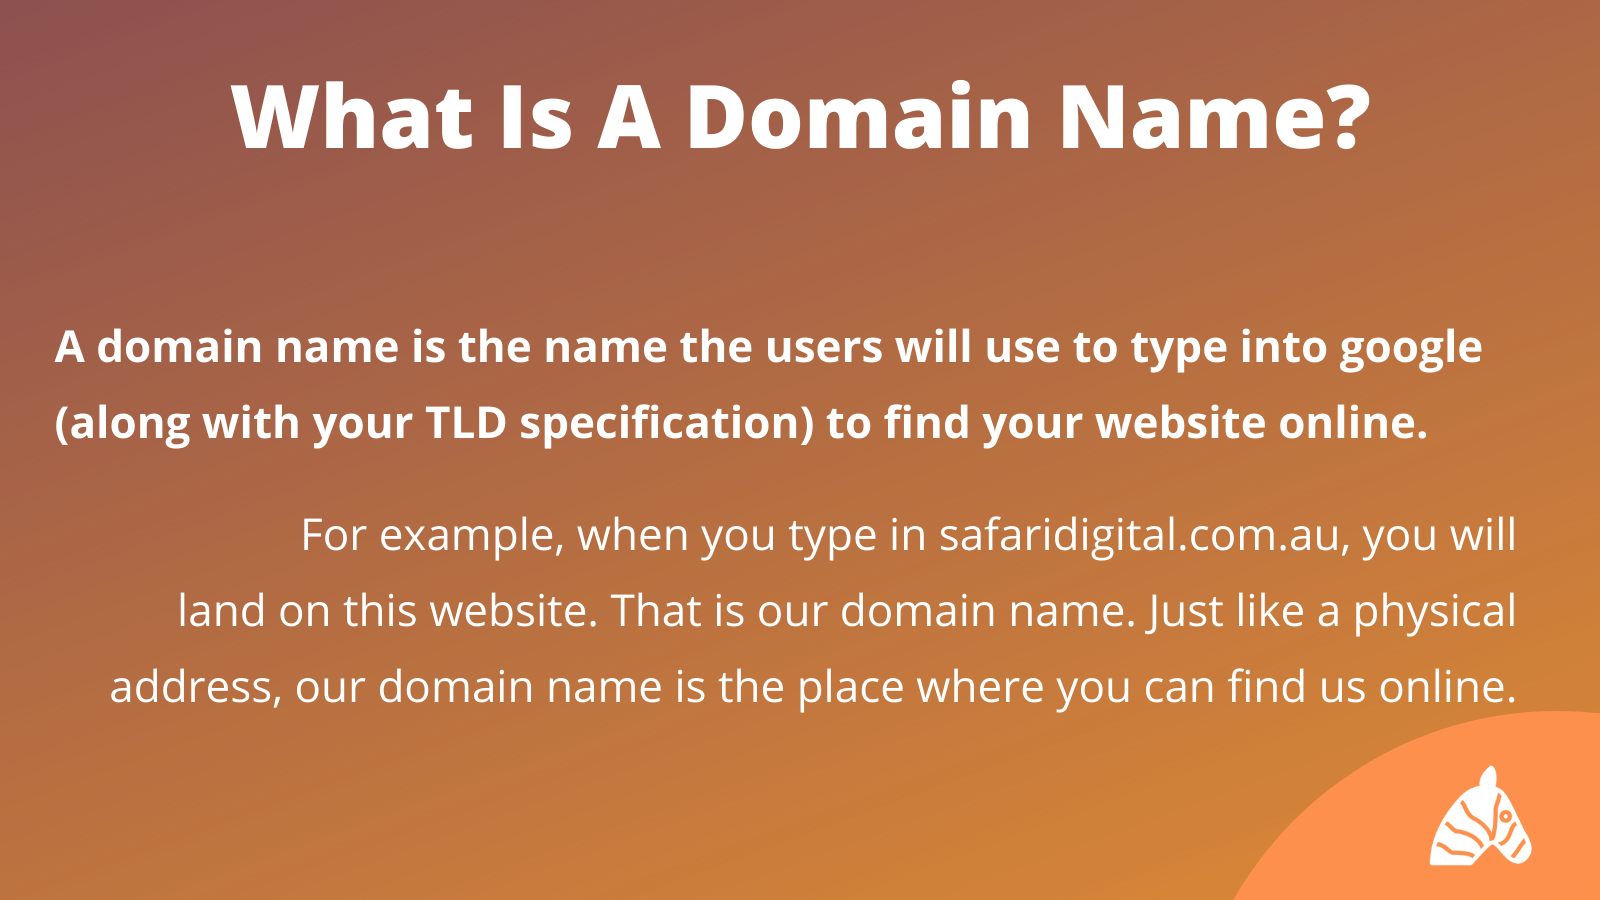 What is a domain name infographic